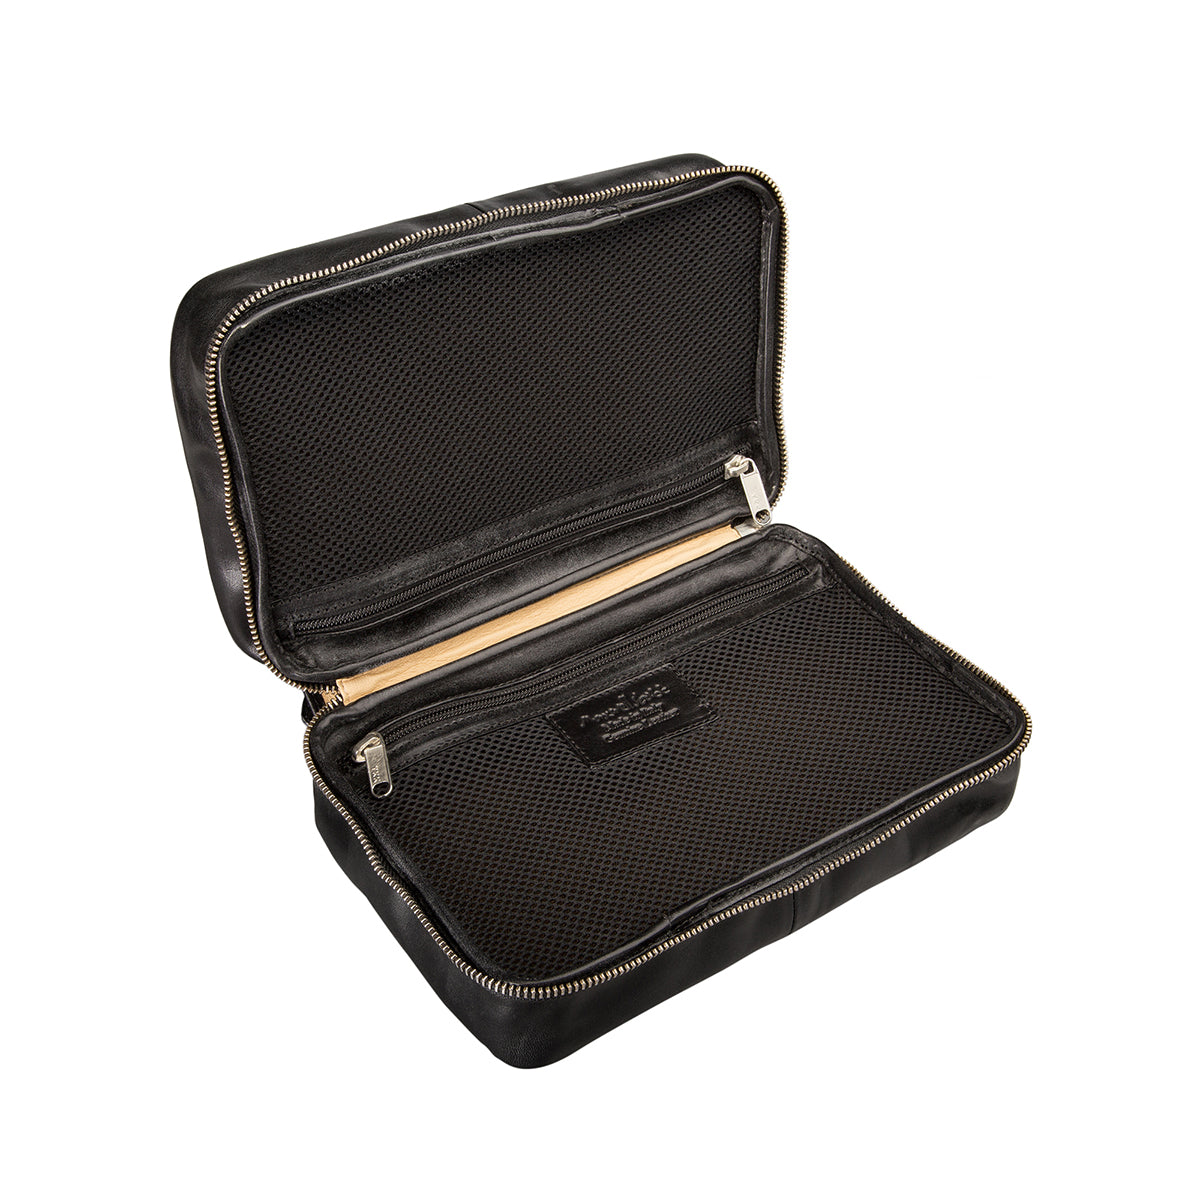 Image 5 of the 'Cascina' Black Veg-Tanned Leather Makeup Case